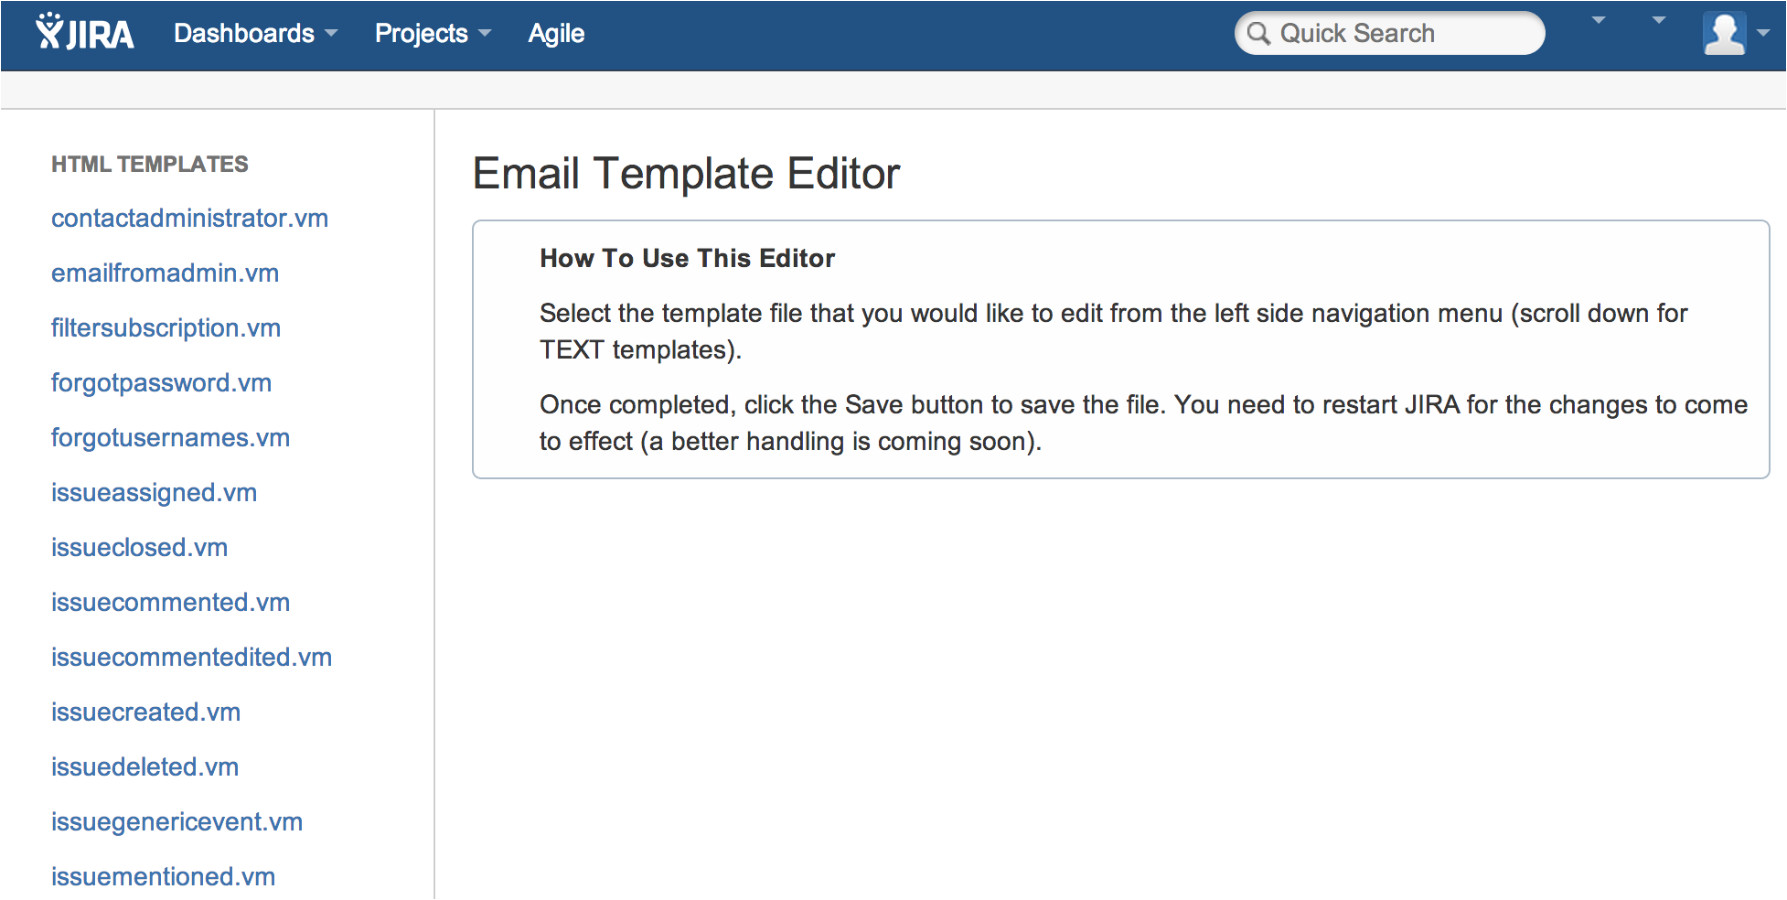 Jira Email Templates Outgoing Email Template Editor for Jira atlassian